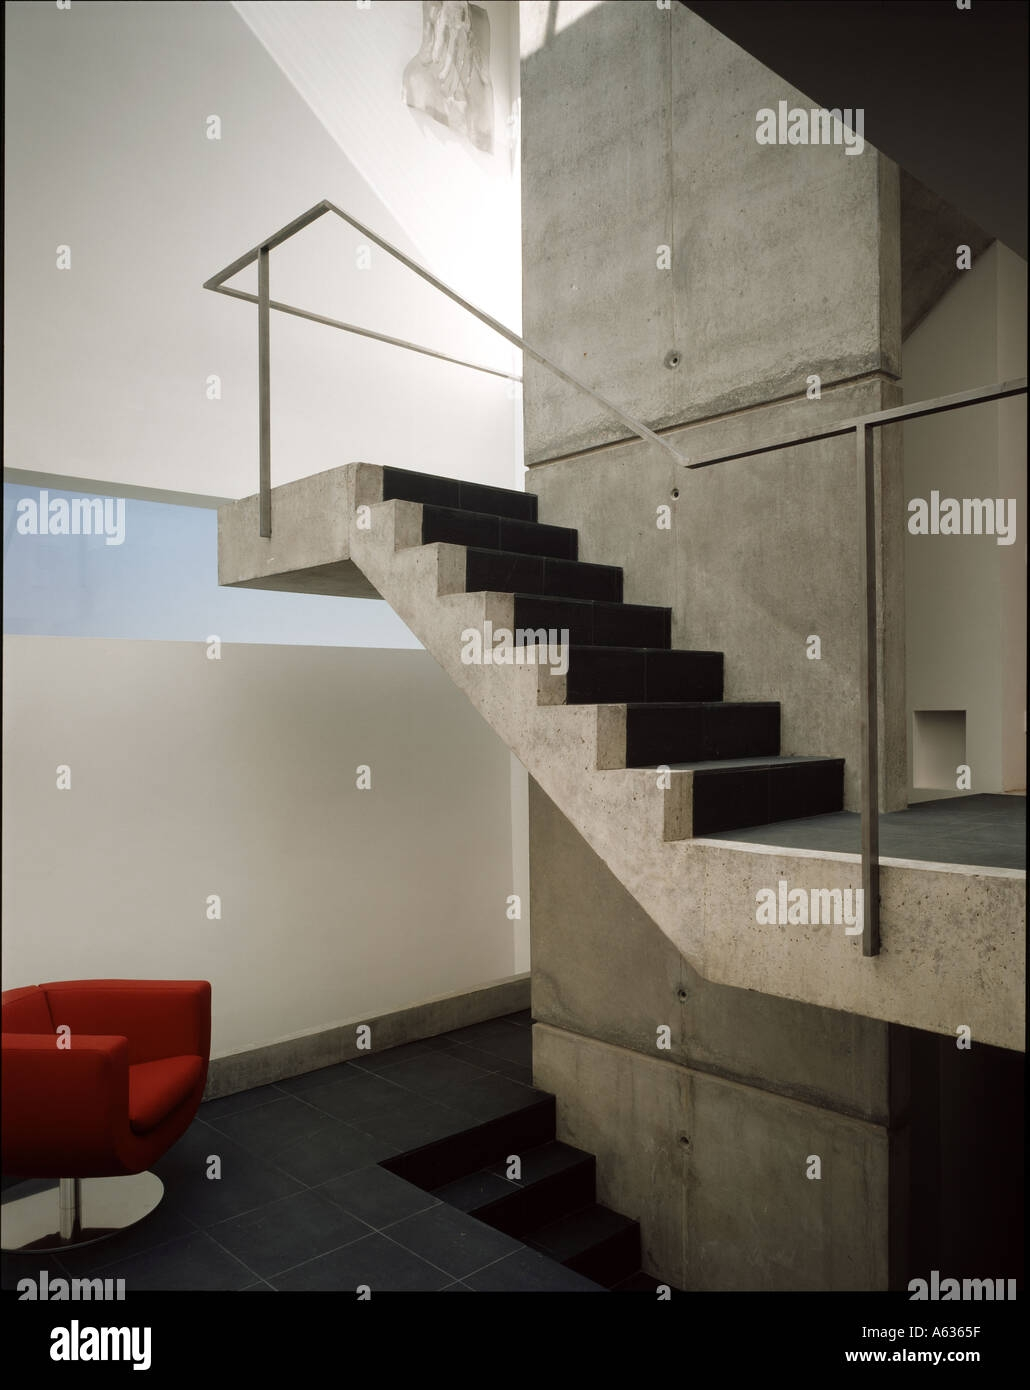 The Tall House Interior Of The Stairwell With Concrete Stairs   Interior Concrete Stairs Design   Architecture   House   White Matte Concrete   Urban   Dark Wood Modern